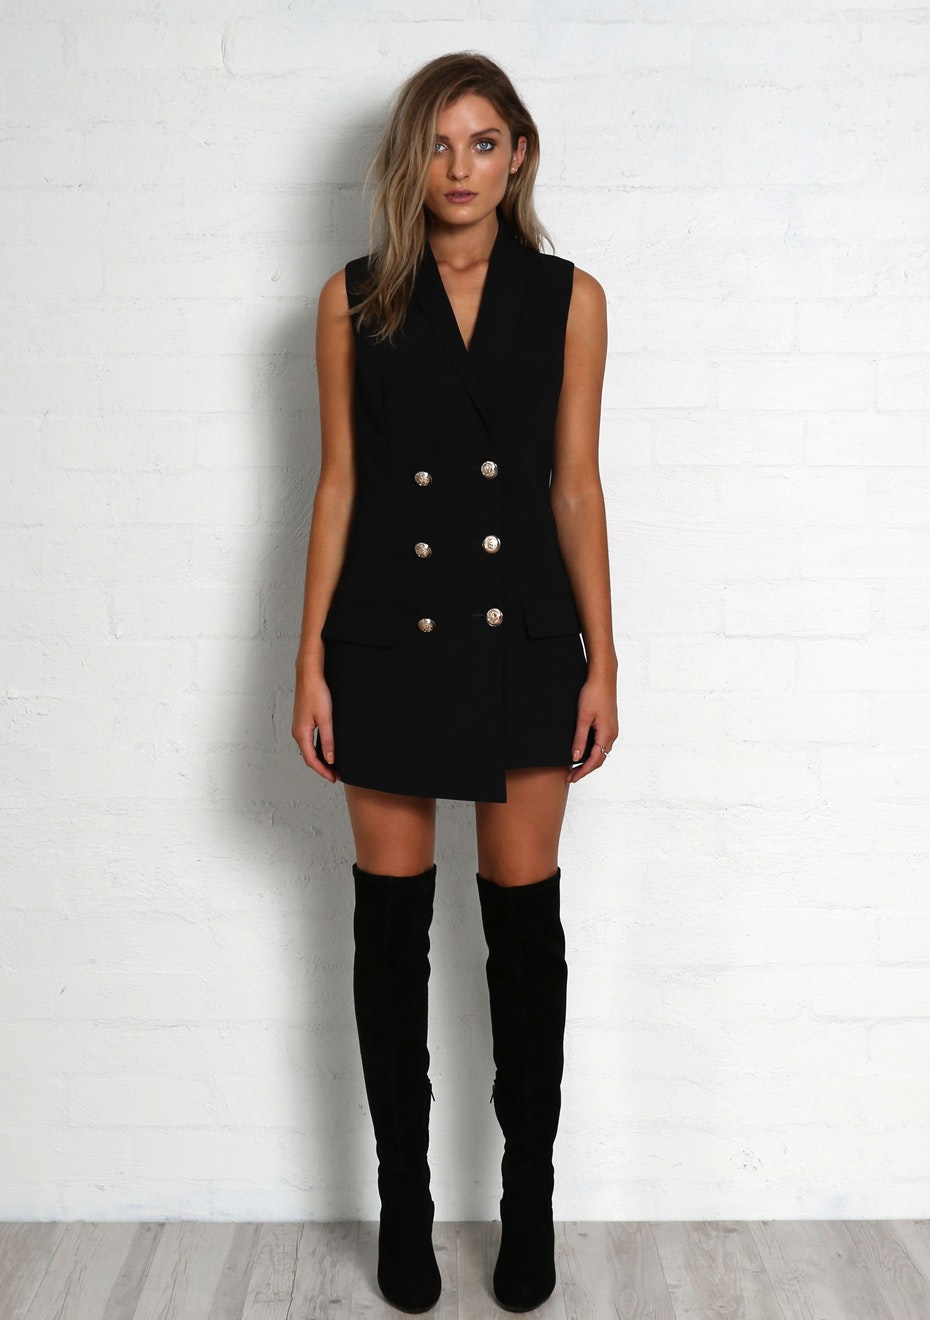 Madison - KENDAL VEST DRESS - BLACK